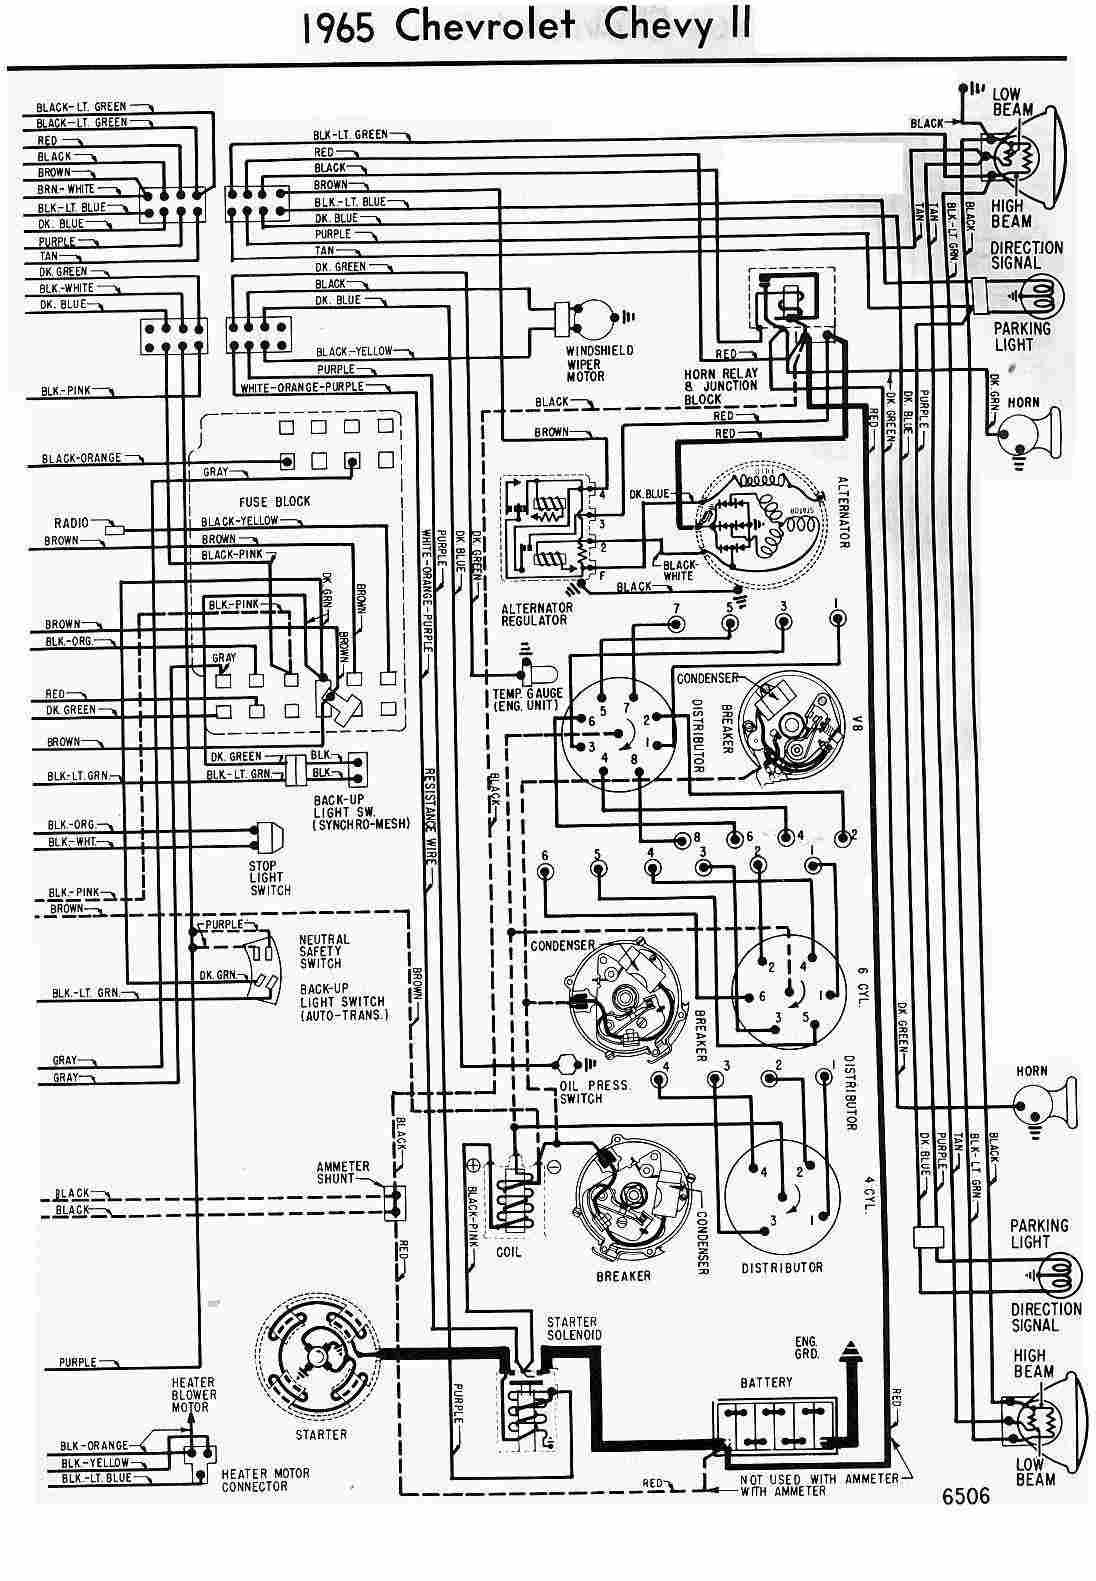 1962 Impala Wiper Motor Wiring Diagram Library 1965 Chevy Truck Distributor 59 Data Diagrams U2022 1967 Chevelle